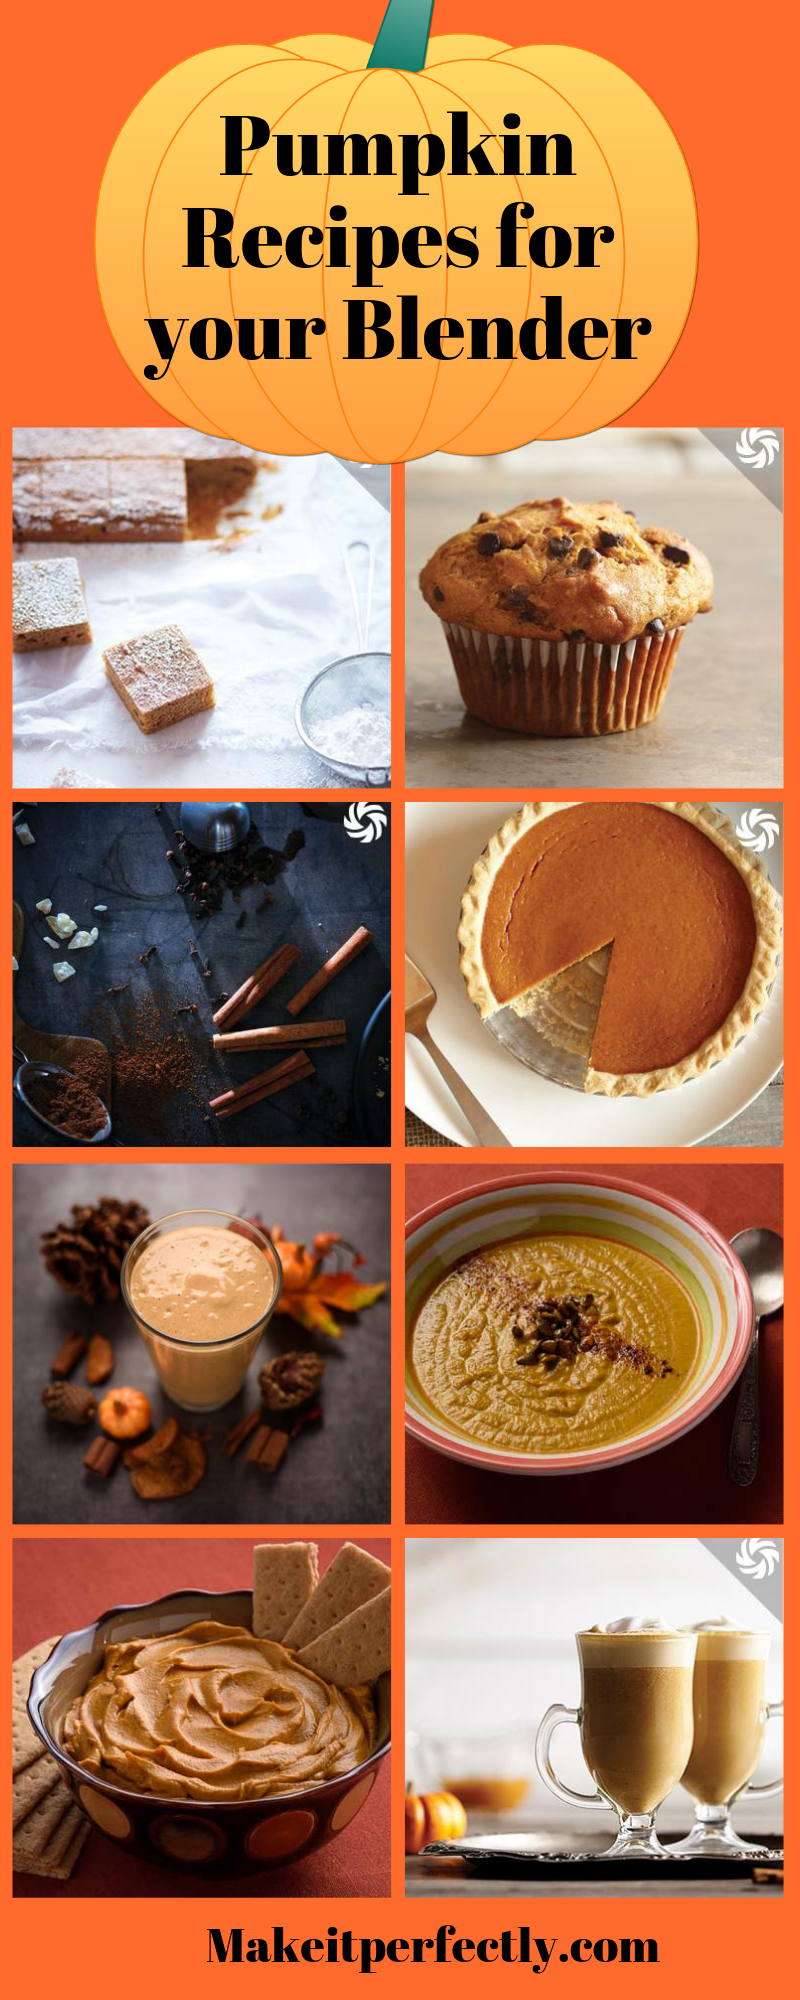 Check out these great Blender Pumpkin Recipes! Use your